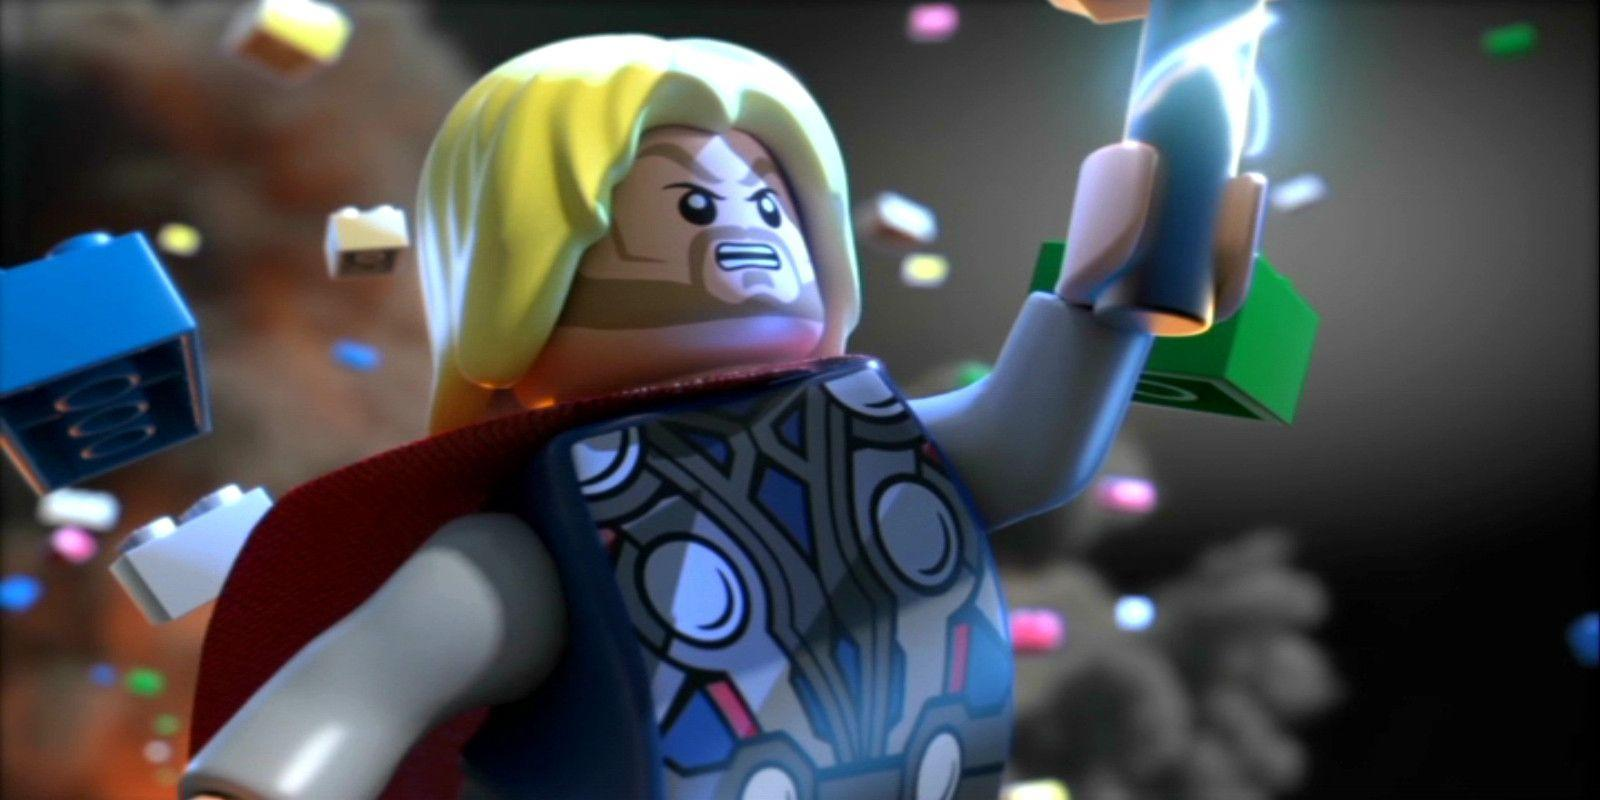 lego marvel wallpaper for desktop - photo #3